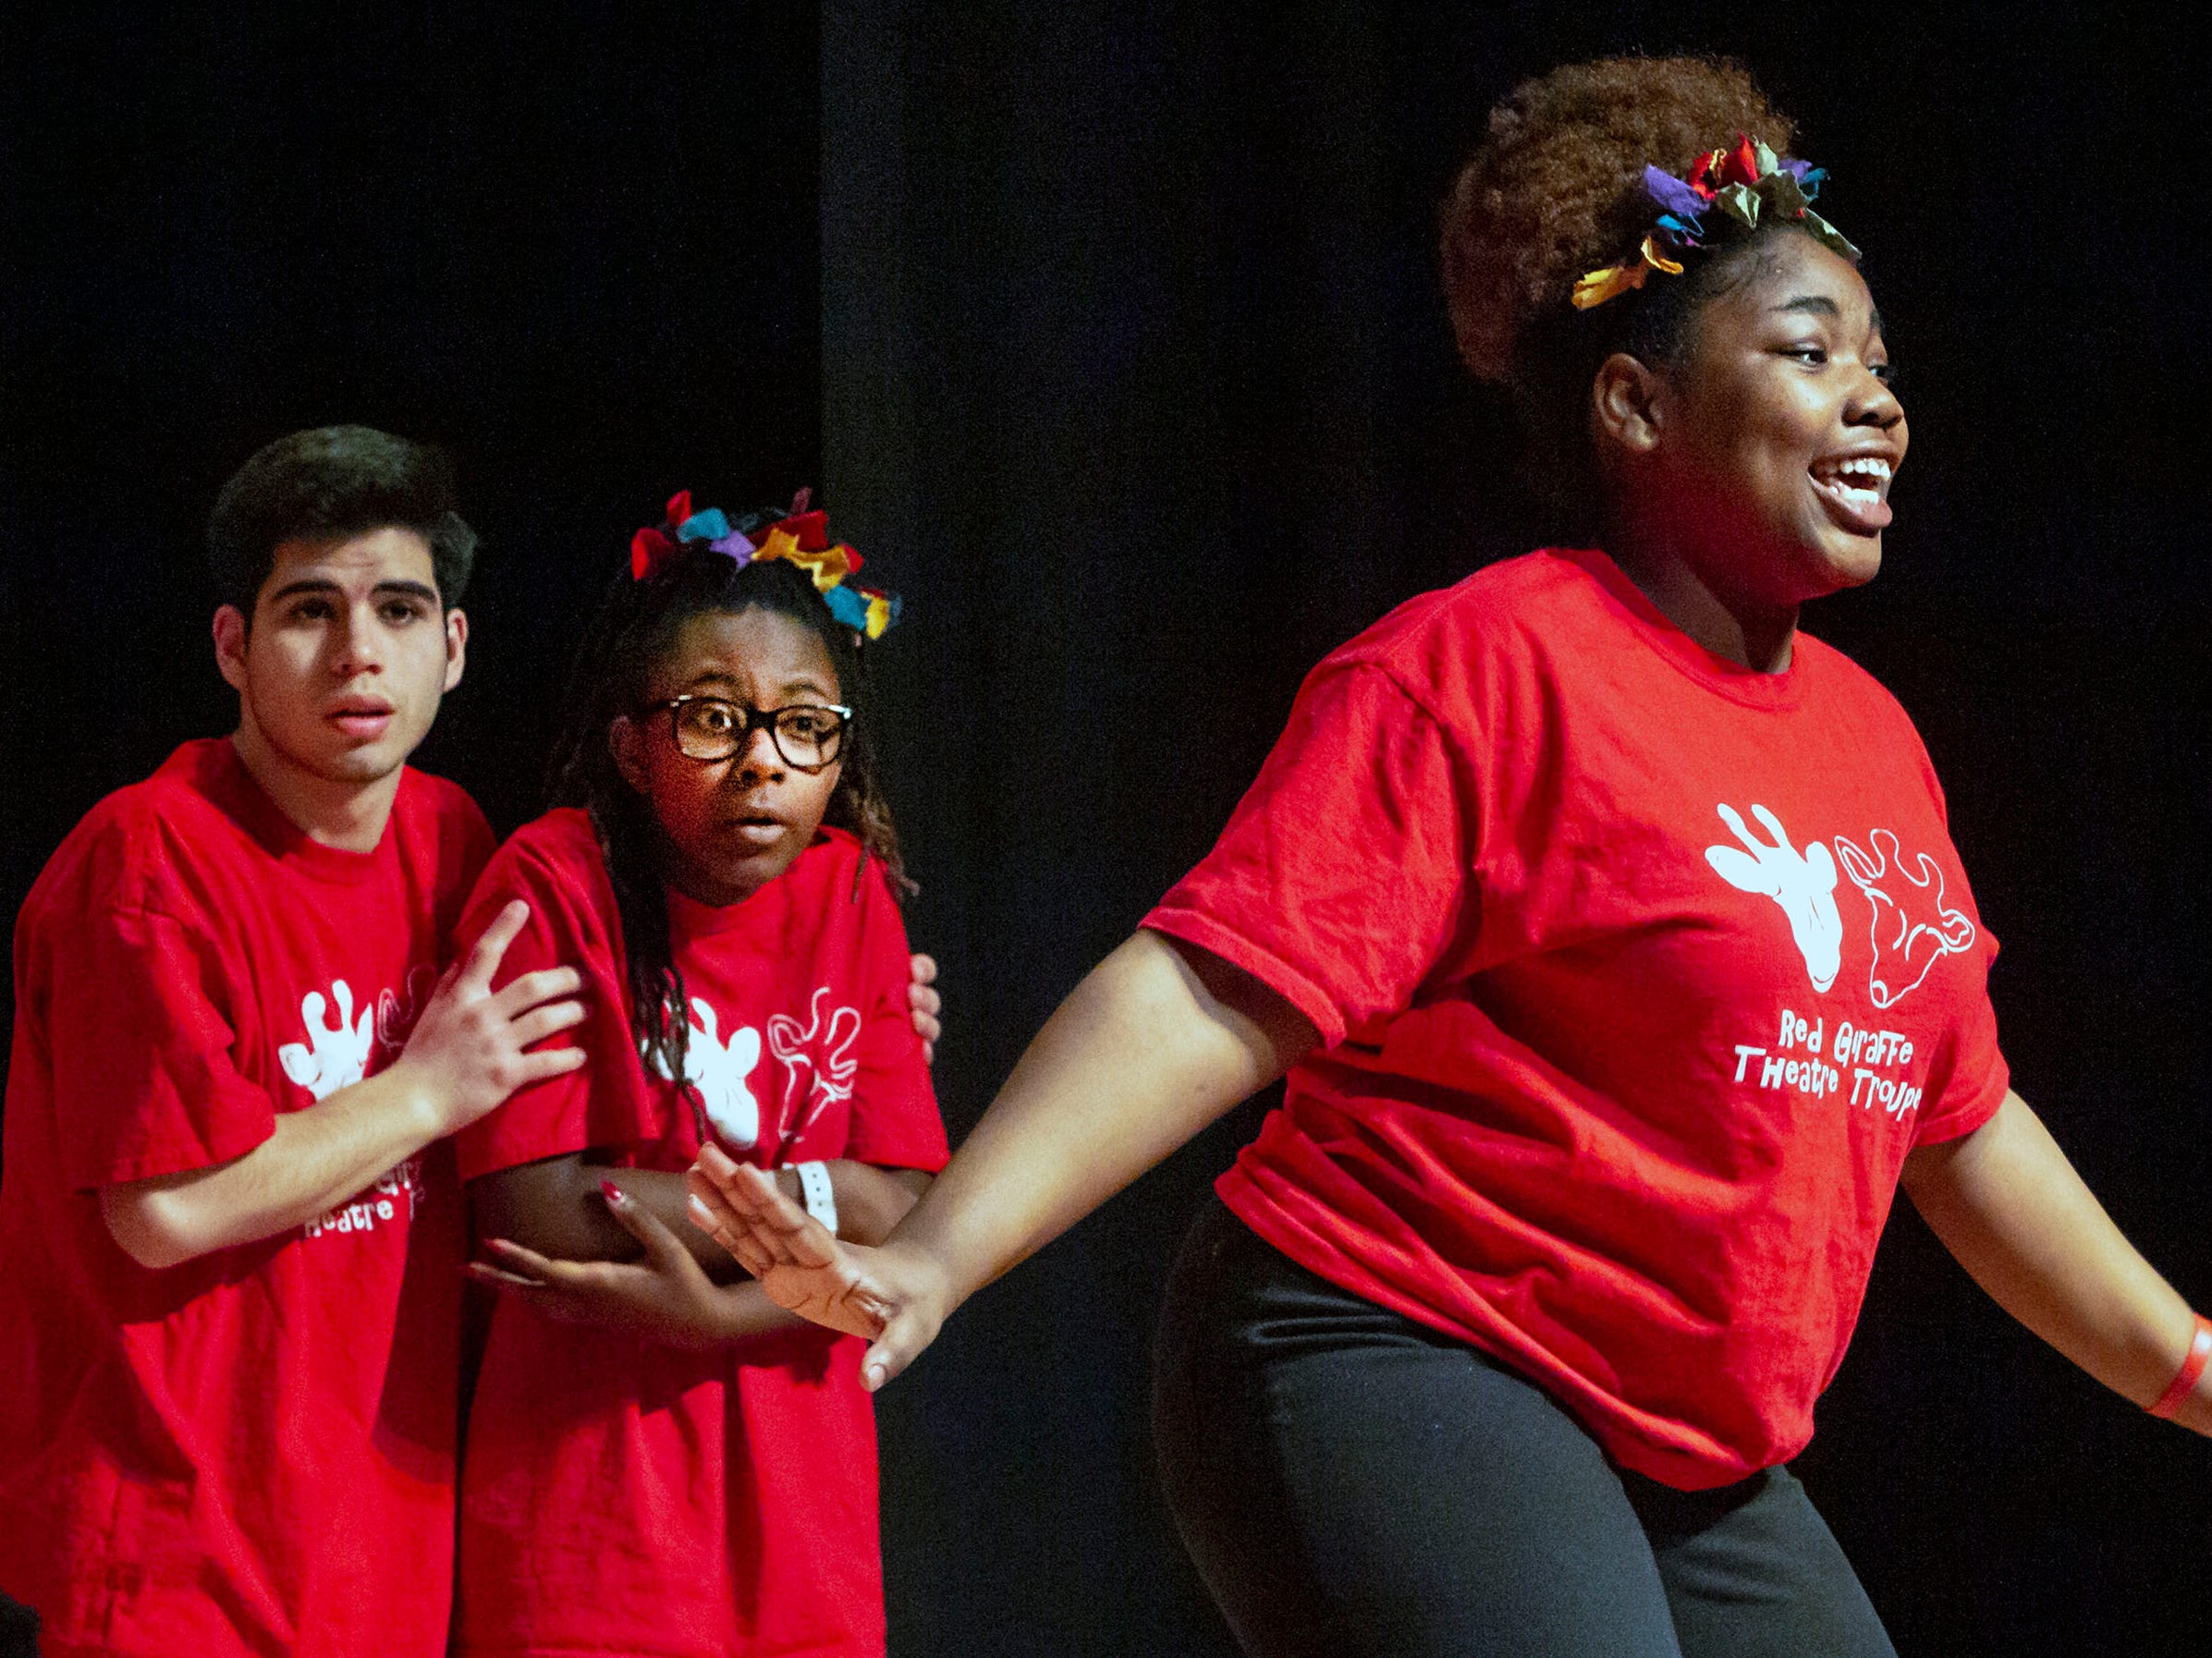 Bradley Academy Red Giraffe Theater Troupe perform at the African-American Cultural Celebration held at Patterson Park Community Center.